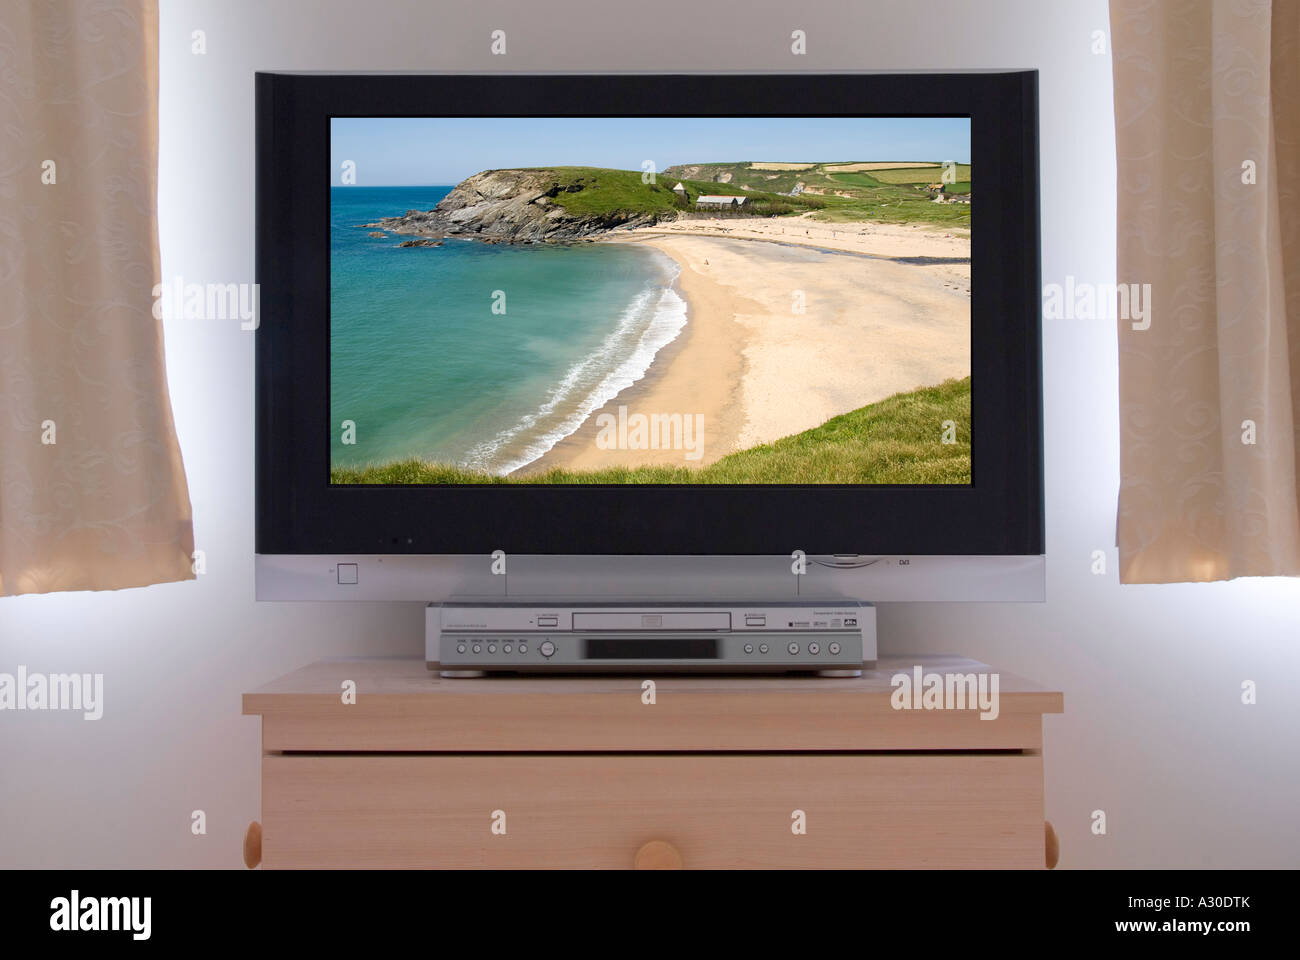 Flat Screen Lcd Tv Television Monitor Fixed To Bedroom Wall Stock Photo Alamy